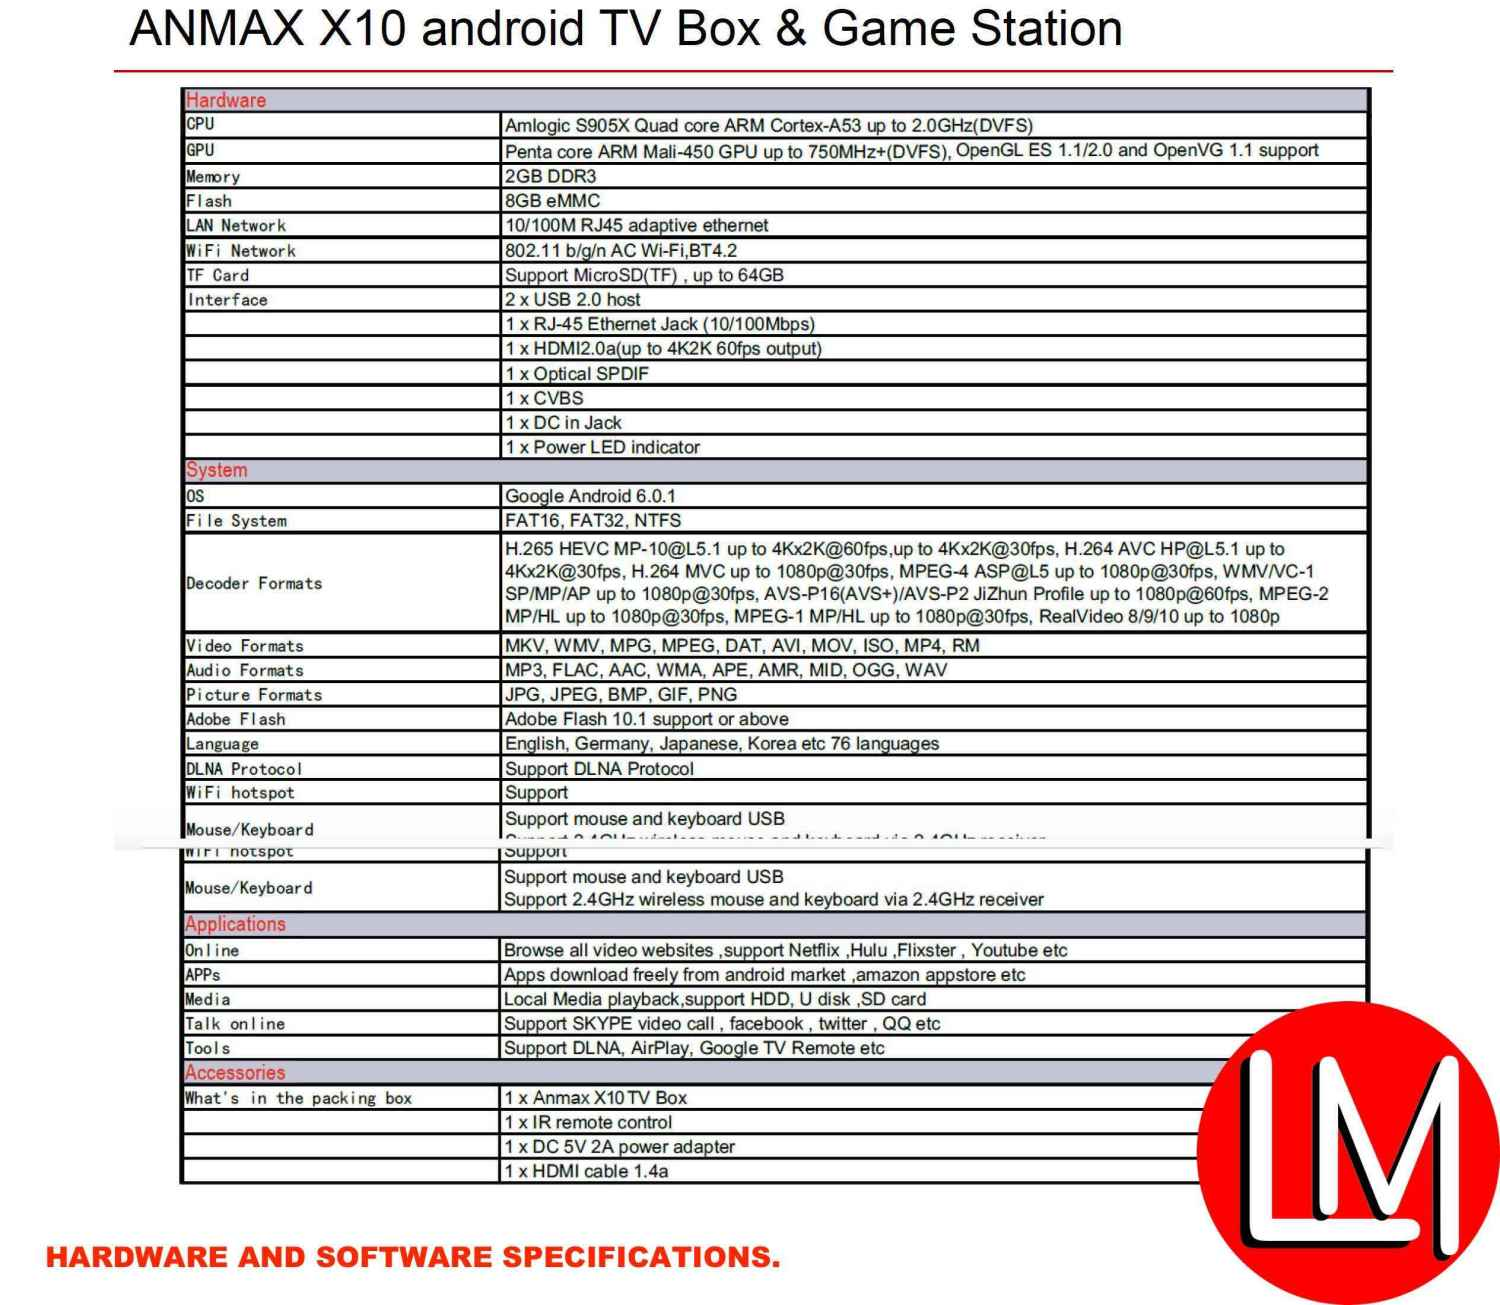 anmax-x10-hARDWARE-AND-SOFTWAE-CONFIG